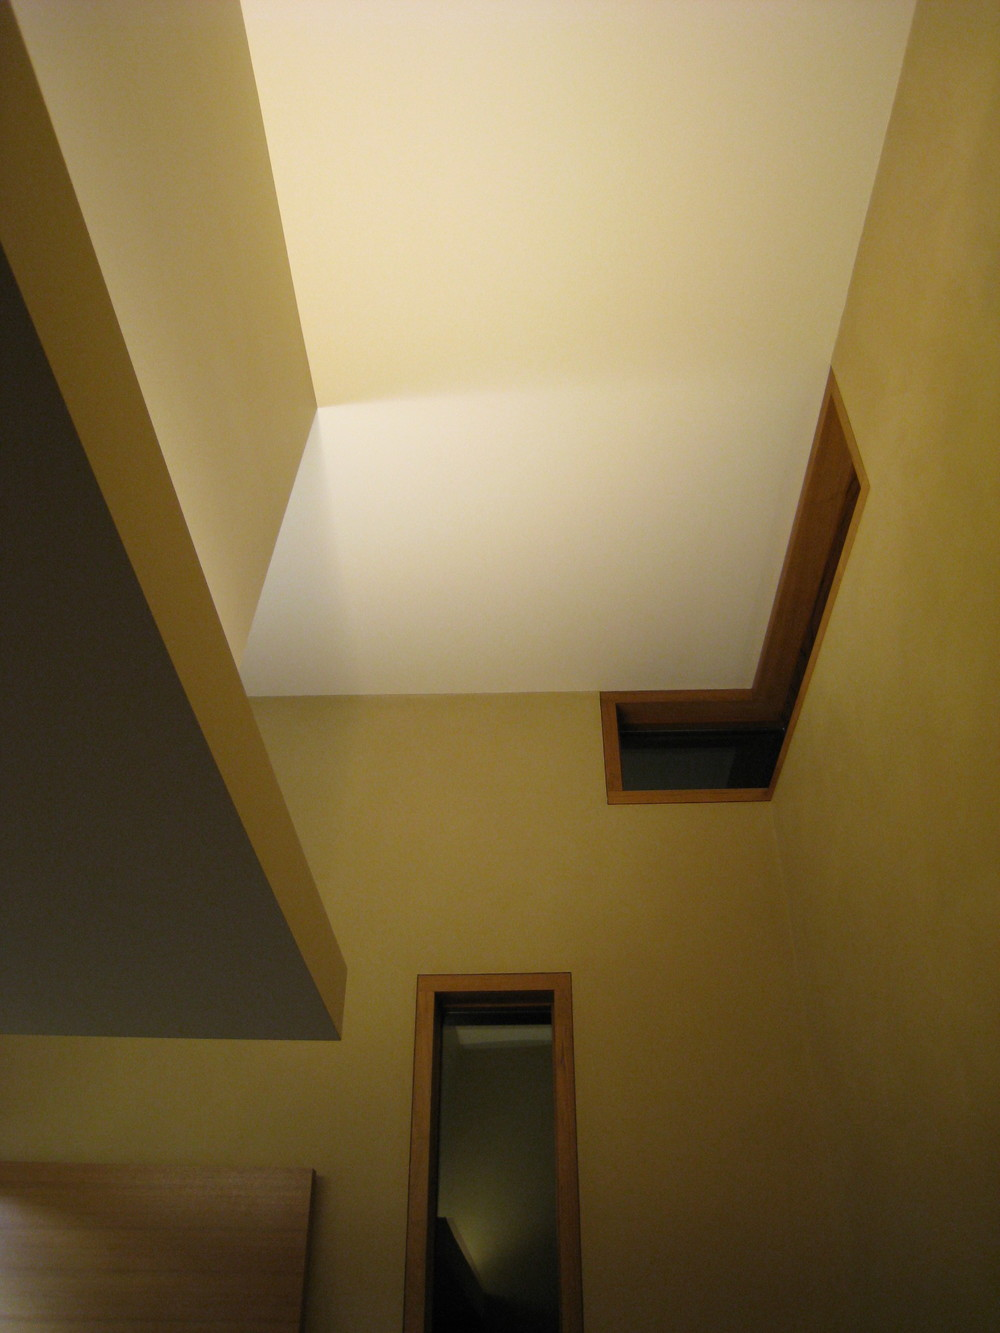 Indirect lighting was designed to accentuate intersecting architectural planes, yet hide the light source. Looking up, it's curious where the walls stop and the ceiling begins.